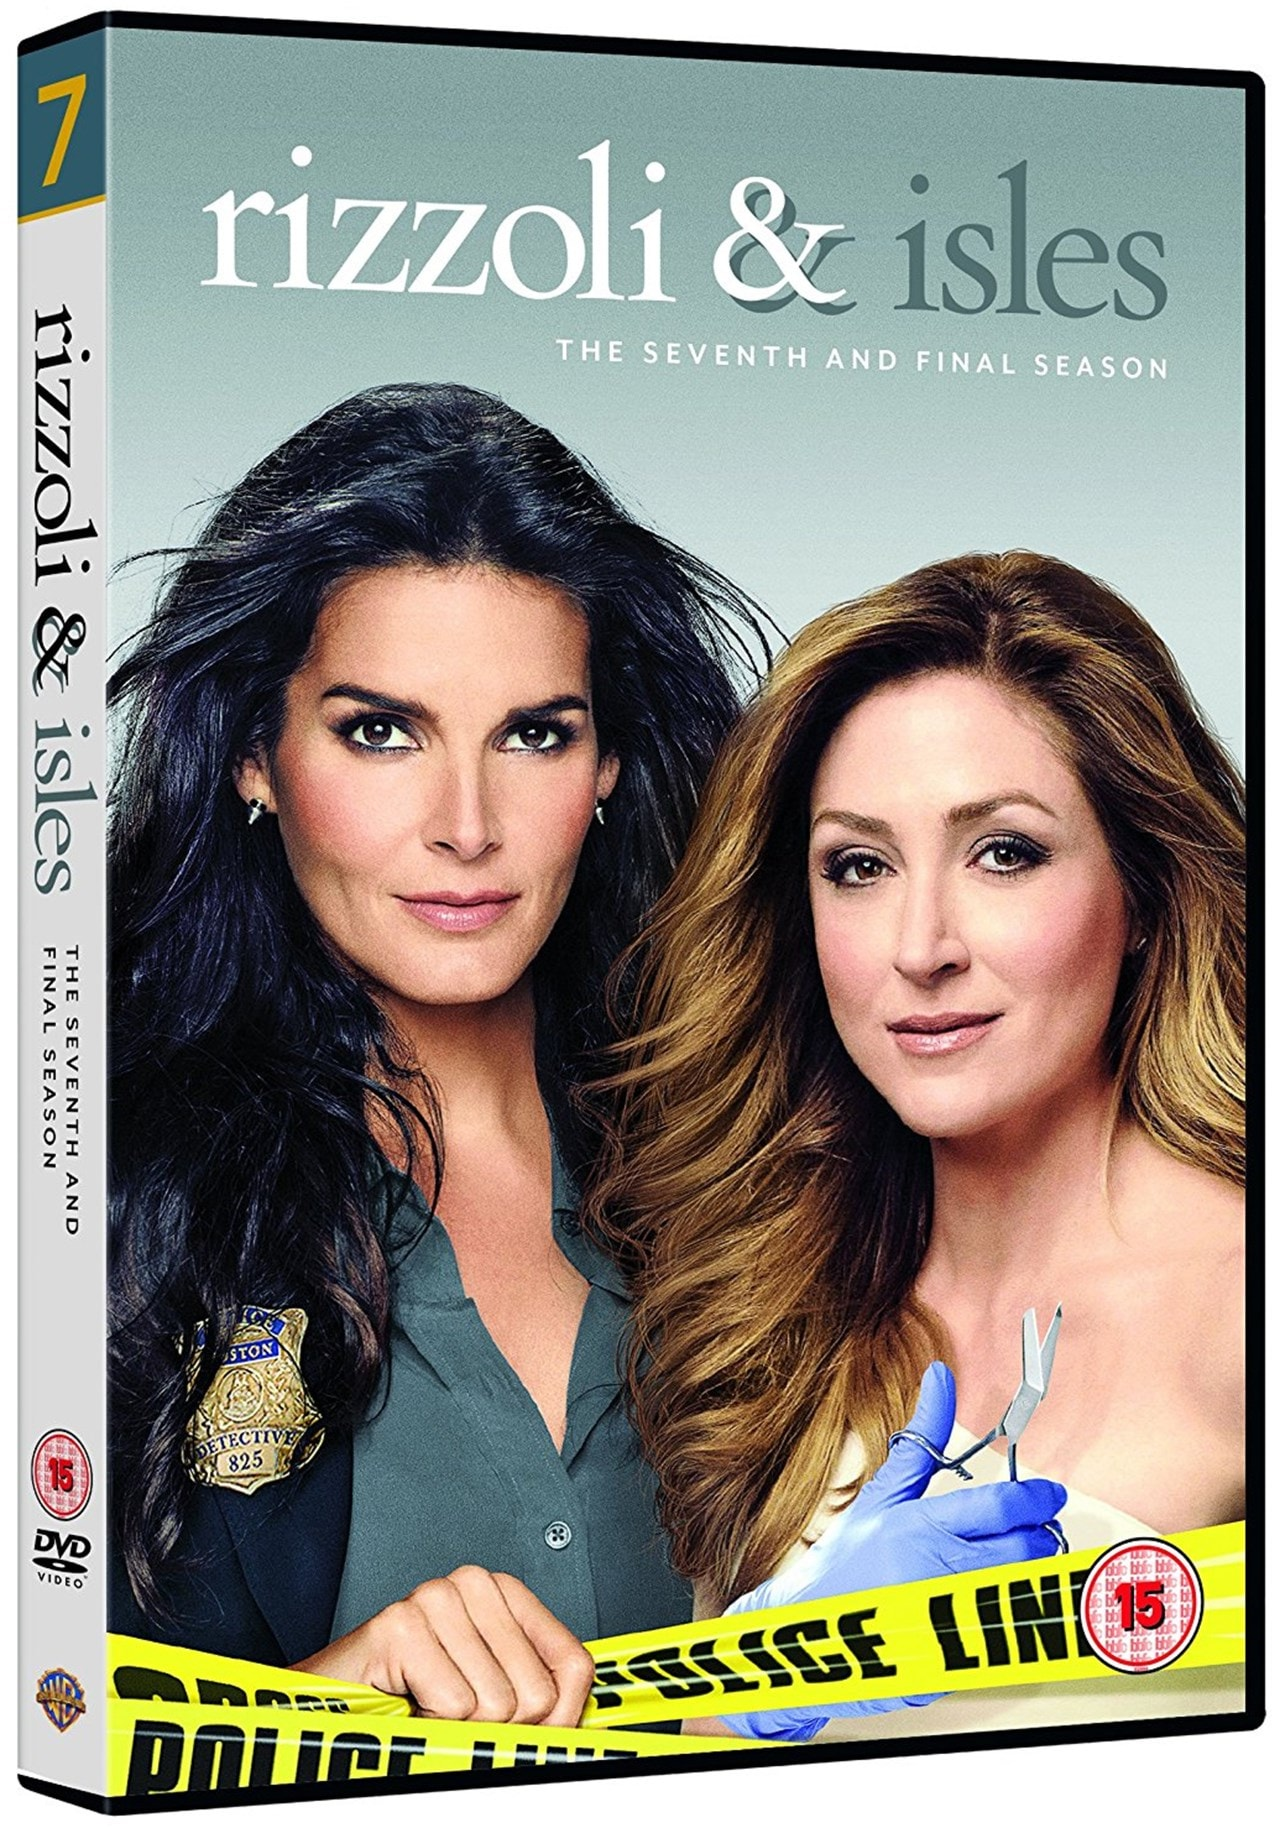 Rizzoli & Isles: The Seventh and Final Season - 1